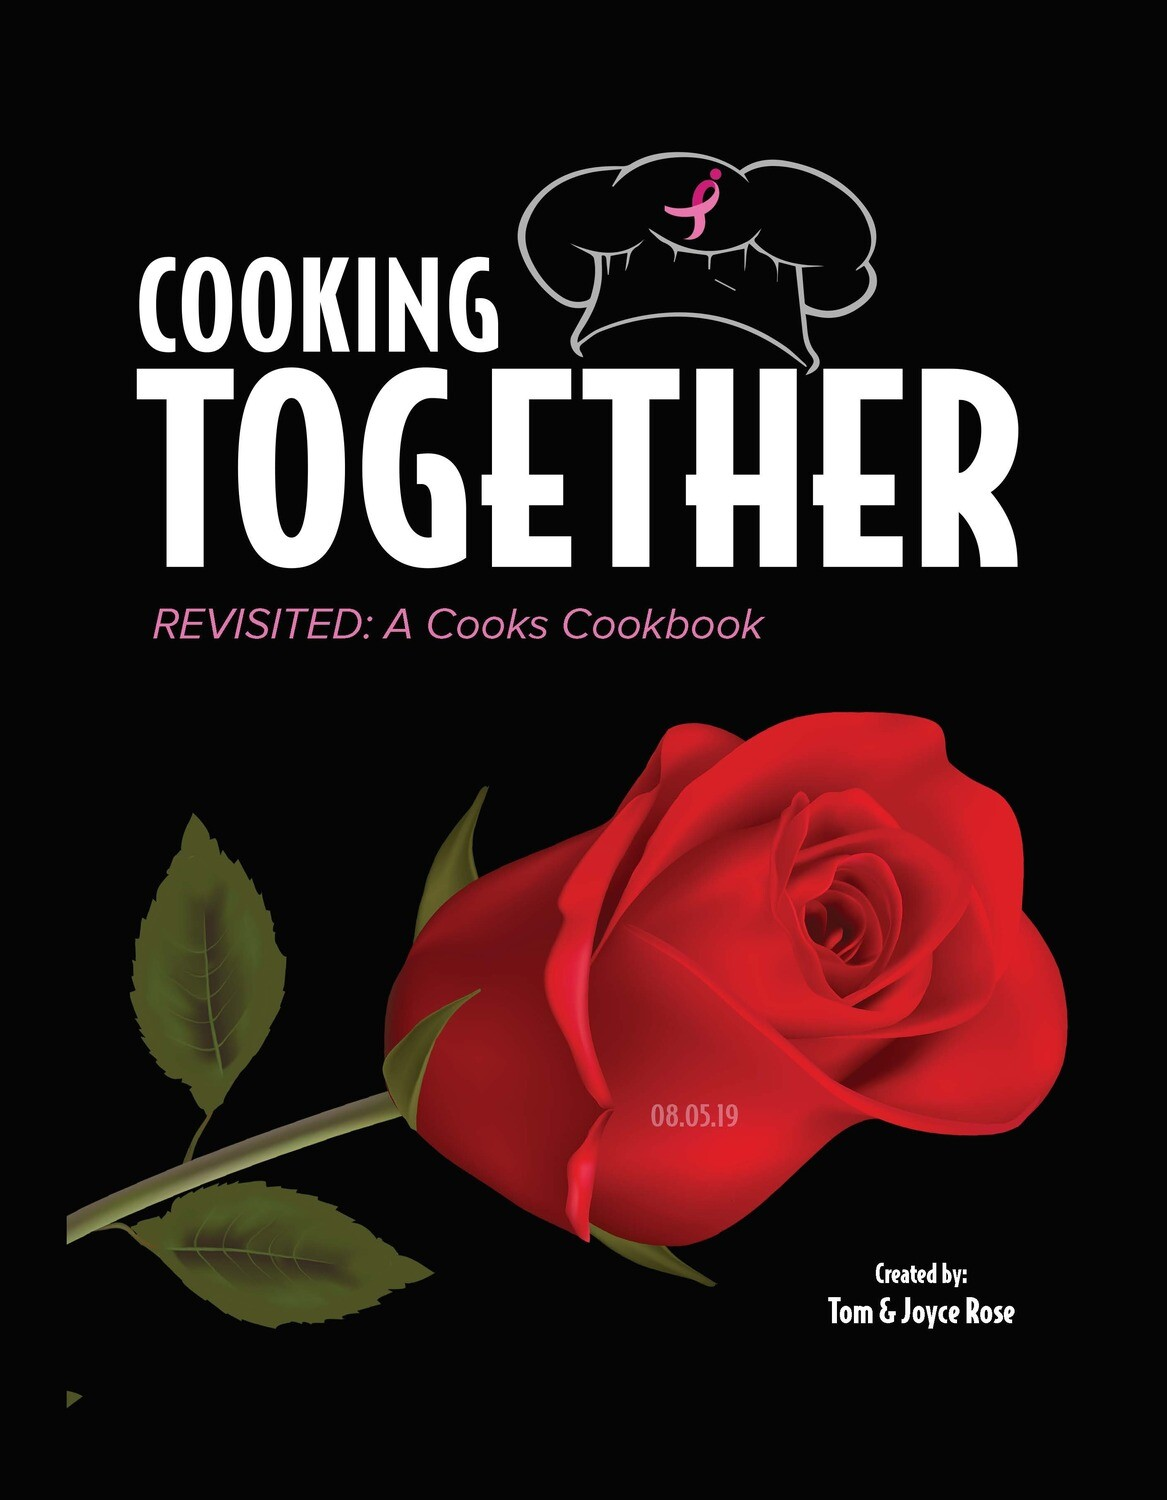 Cooking Together Revisted